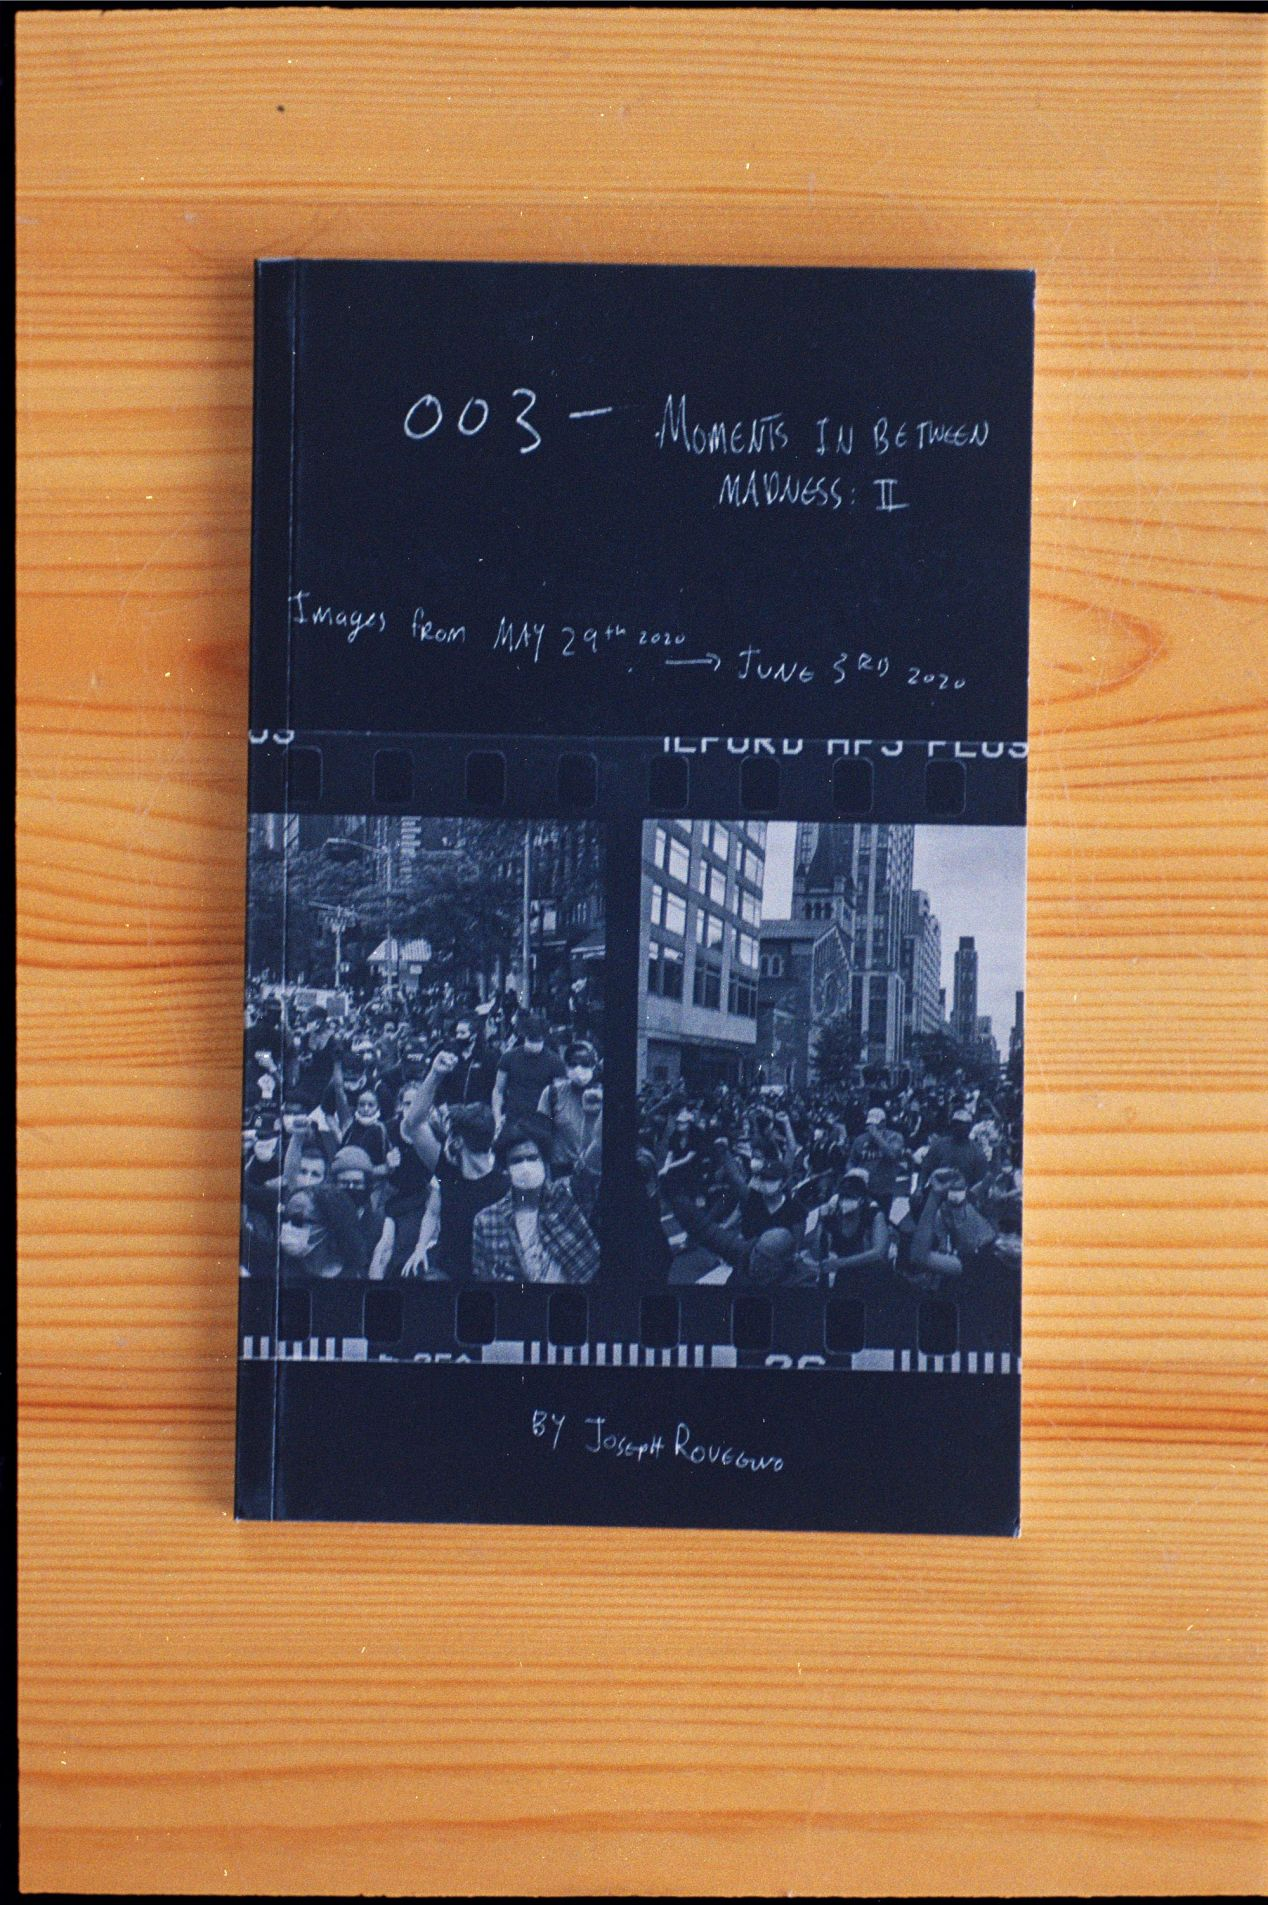 """003 — Moments In Between Madness: II. 5x8"""" 56 pages black and white, perfect bound."""